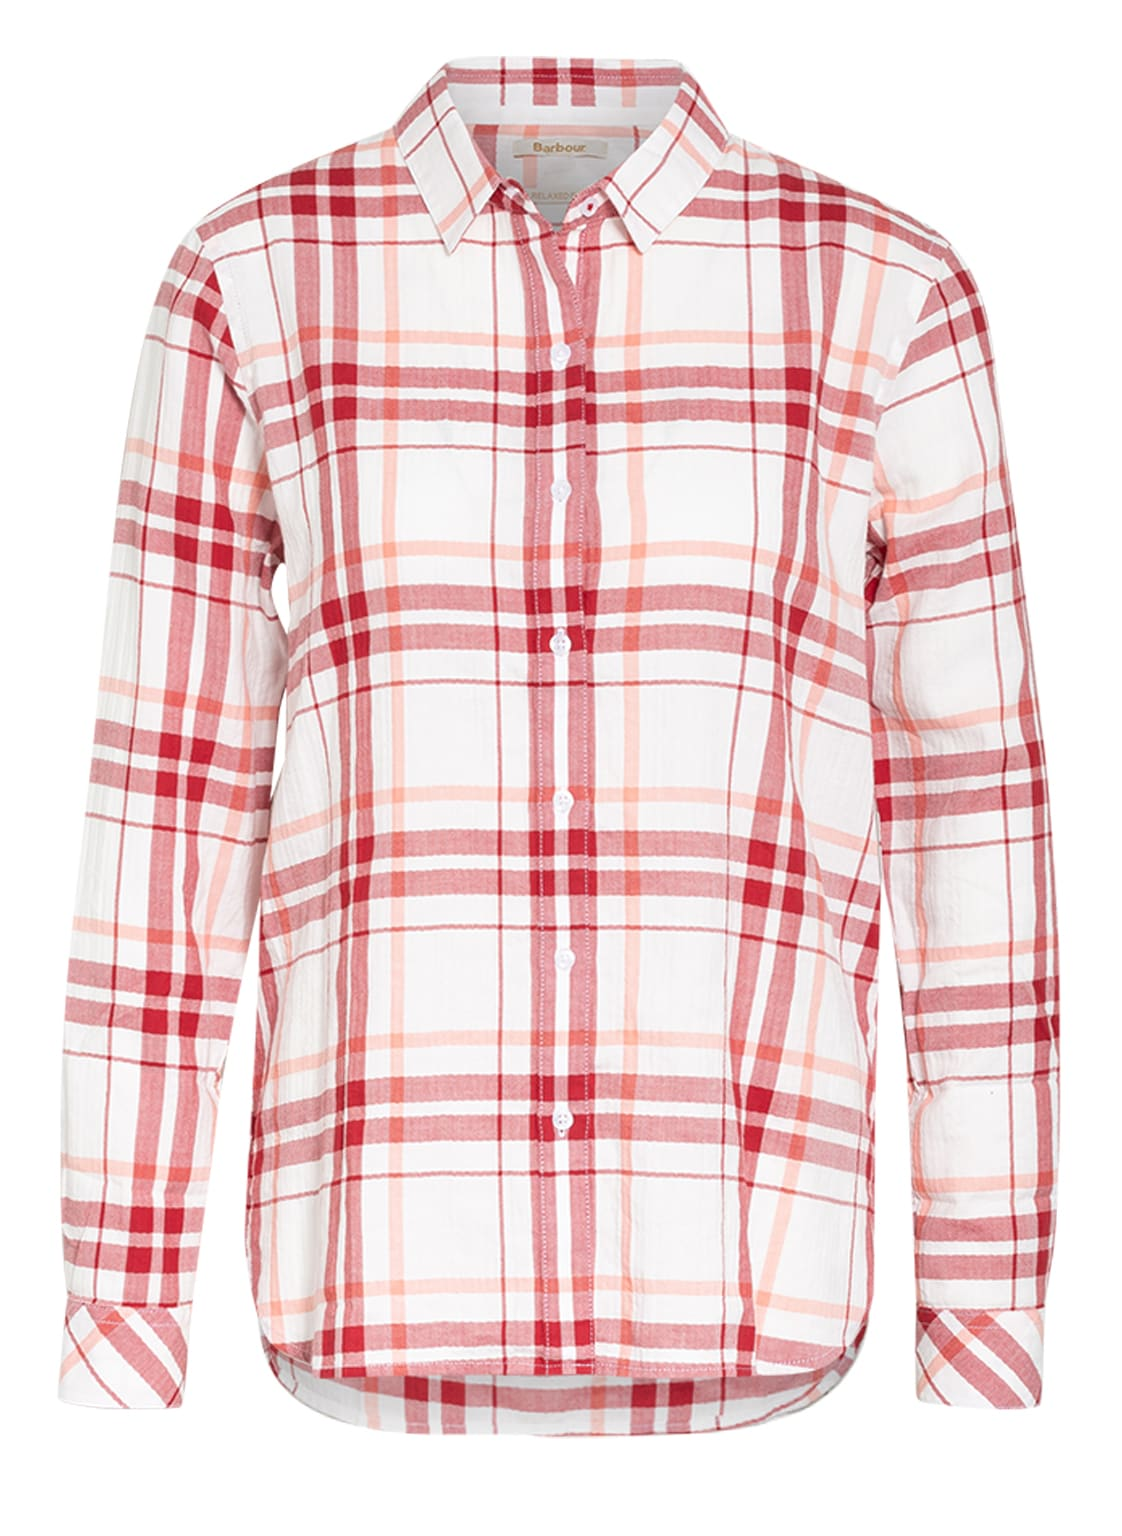 Image of Barbour Bluse rot